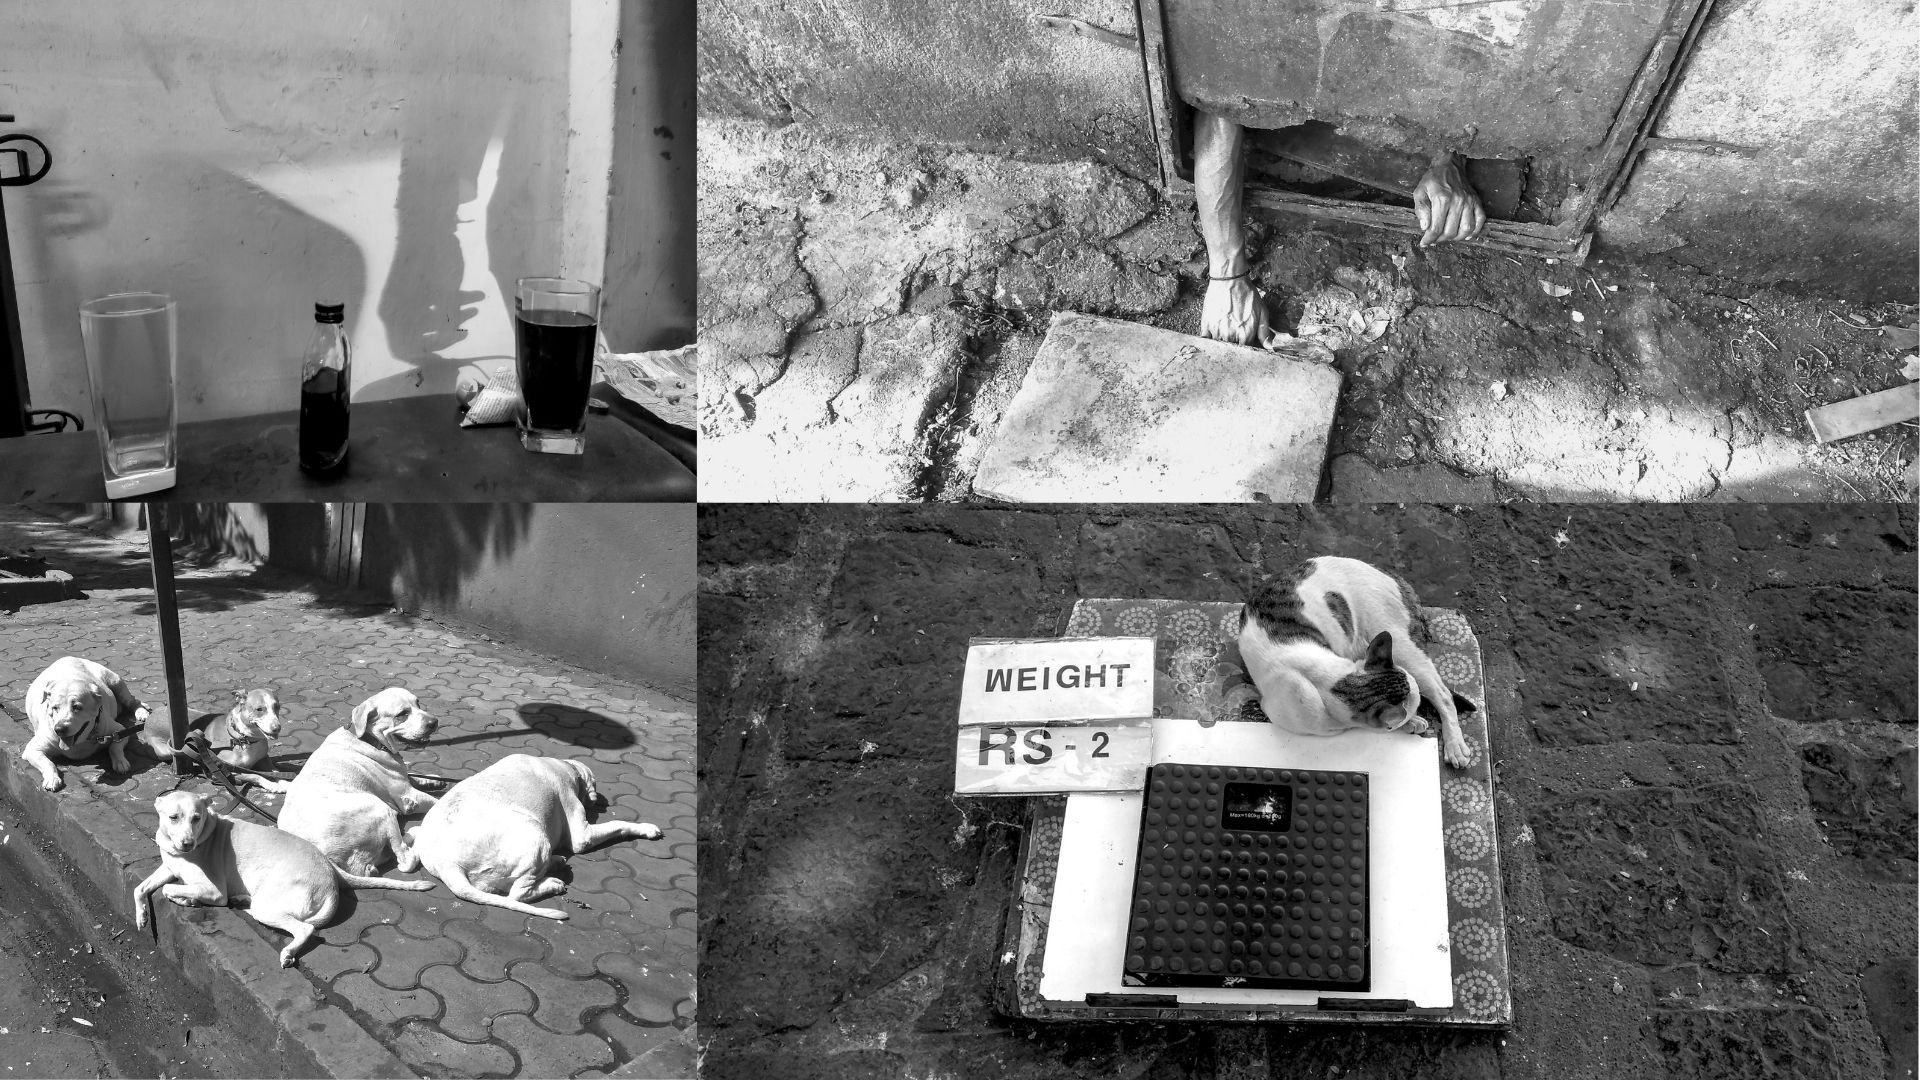 In Mumbai Monochrome, photography and haiku conjoin to explore the unfamiliar in the mundane